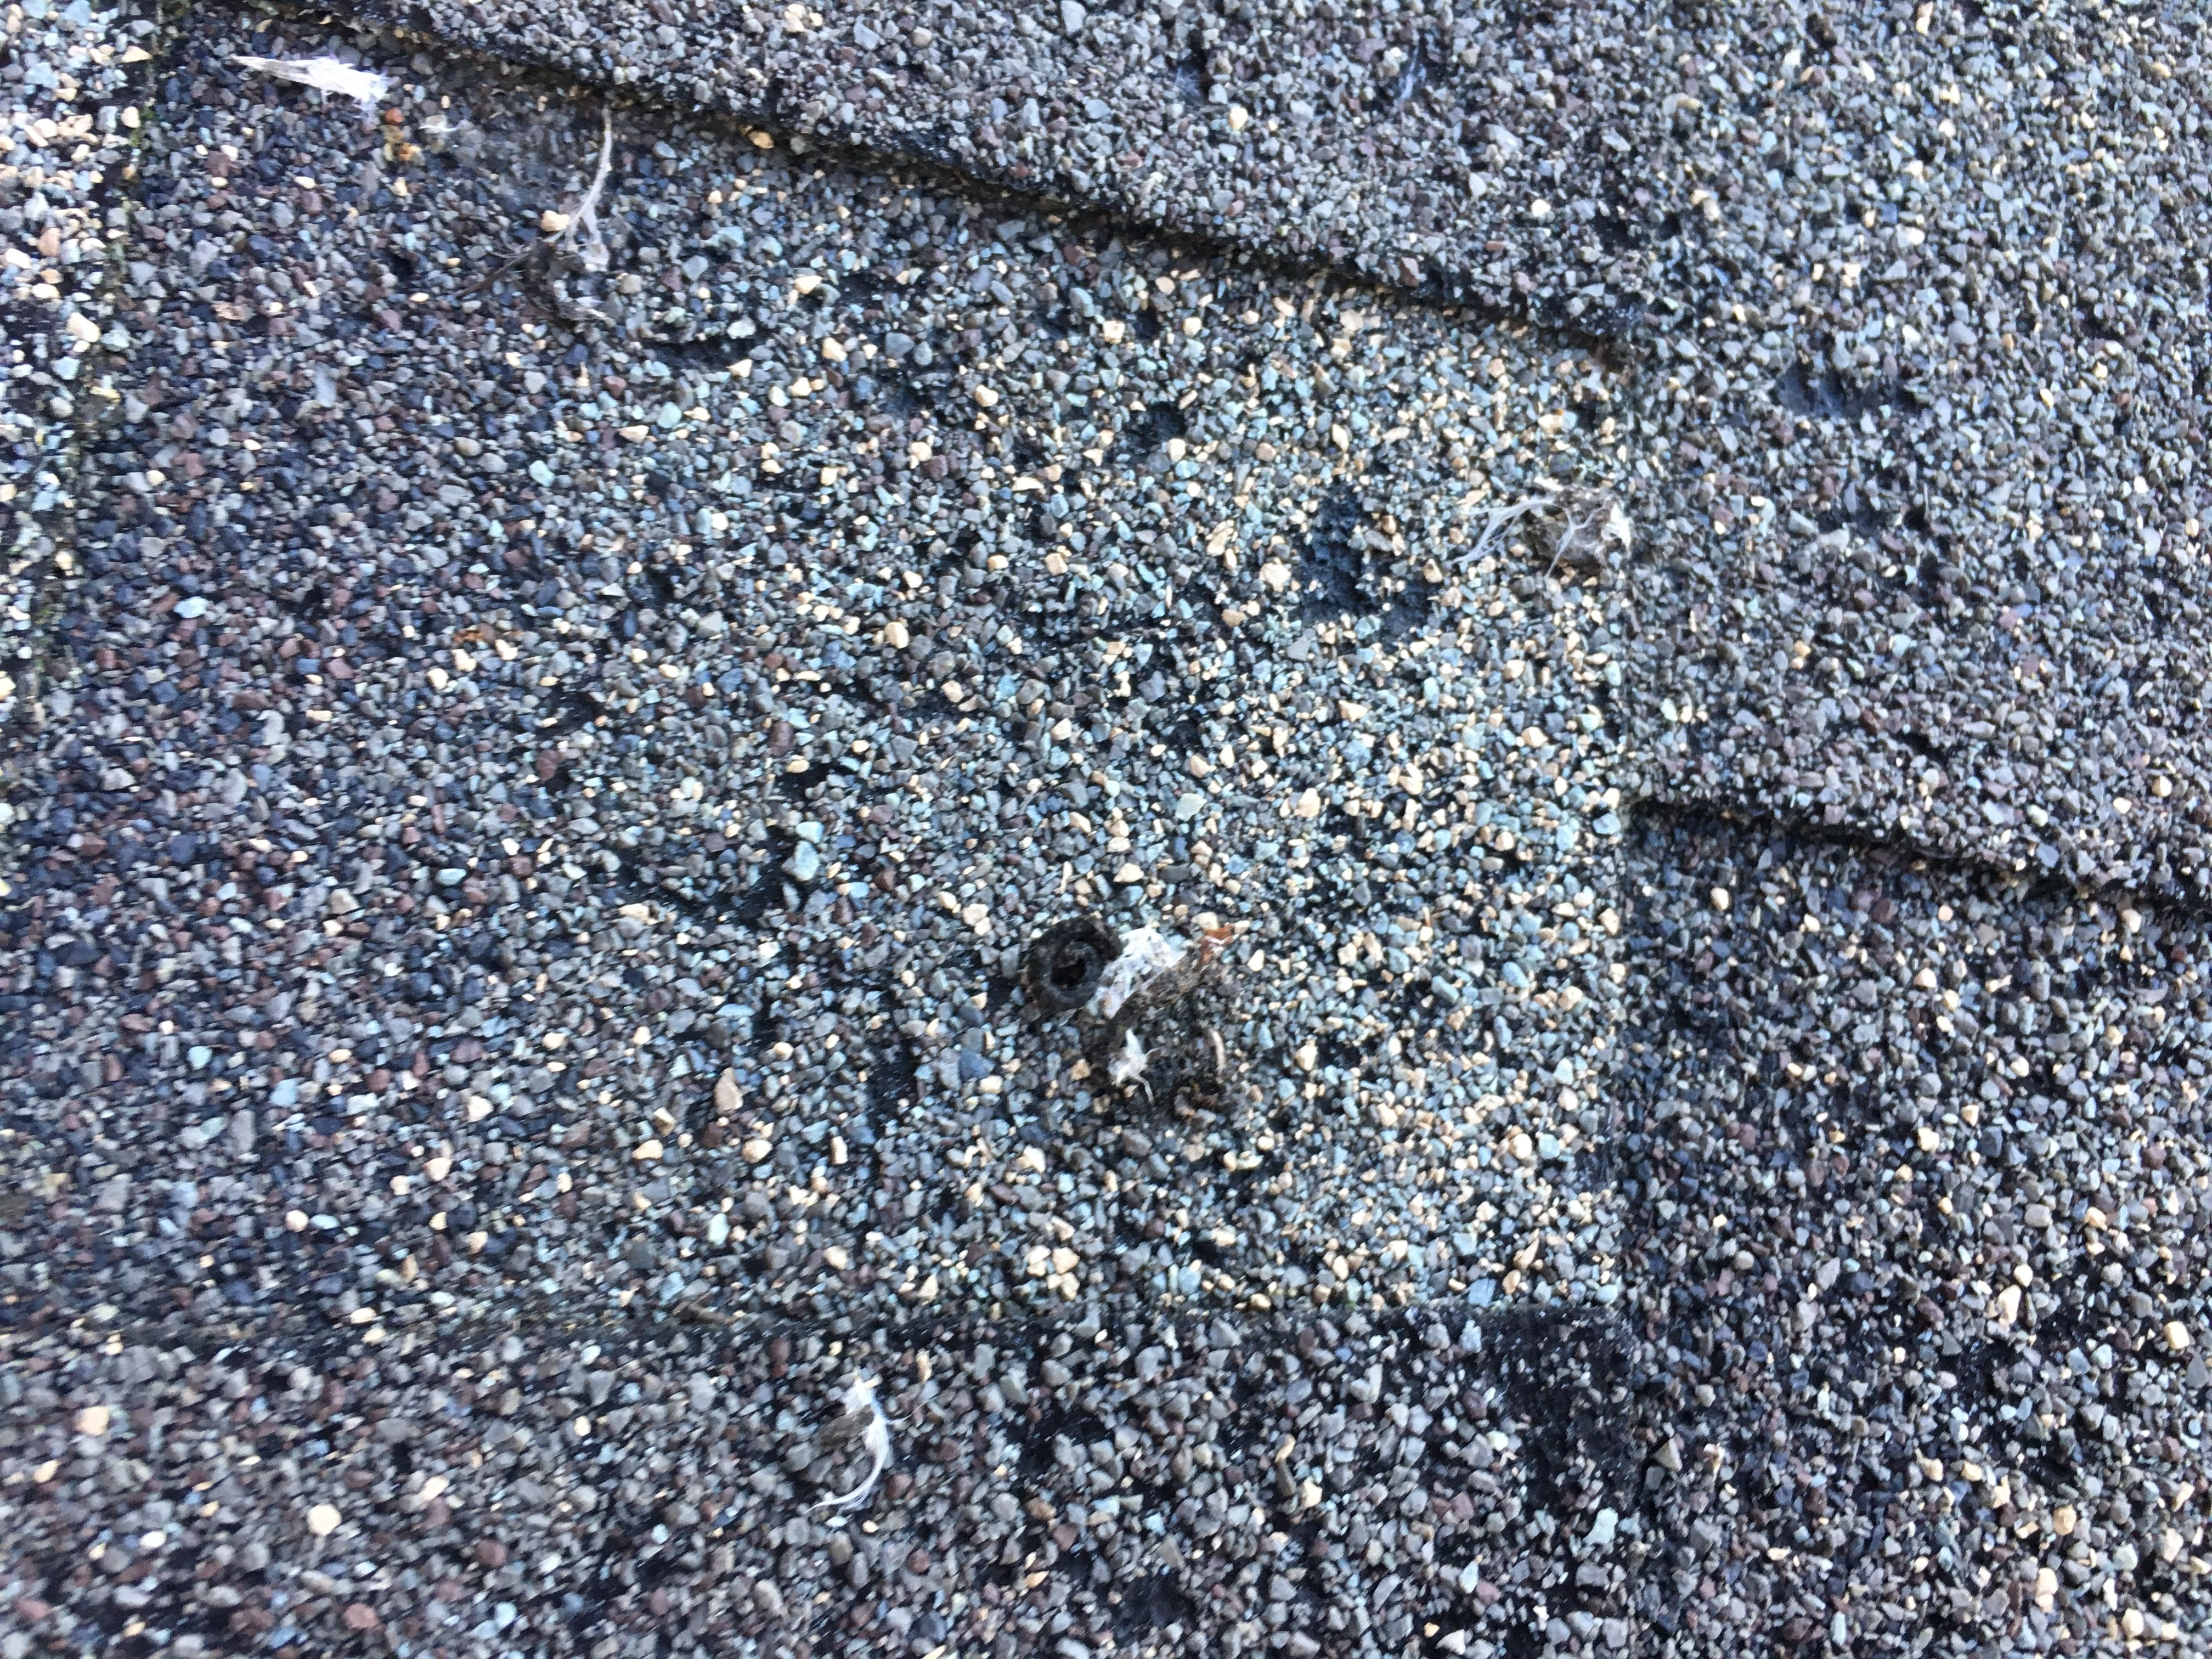 Bird Droppings And Damage We Specialize In Flat Roof Systems Relevant Roofing Are Roofing Specialists Flat Roof Repair Roof Restoration Flat Roof Replacement